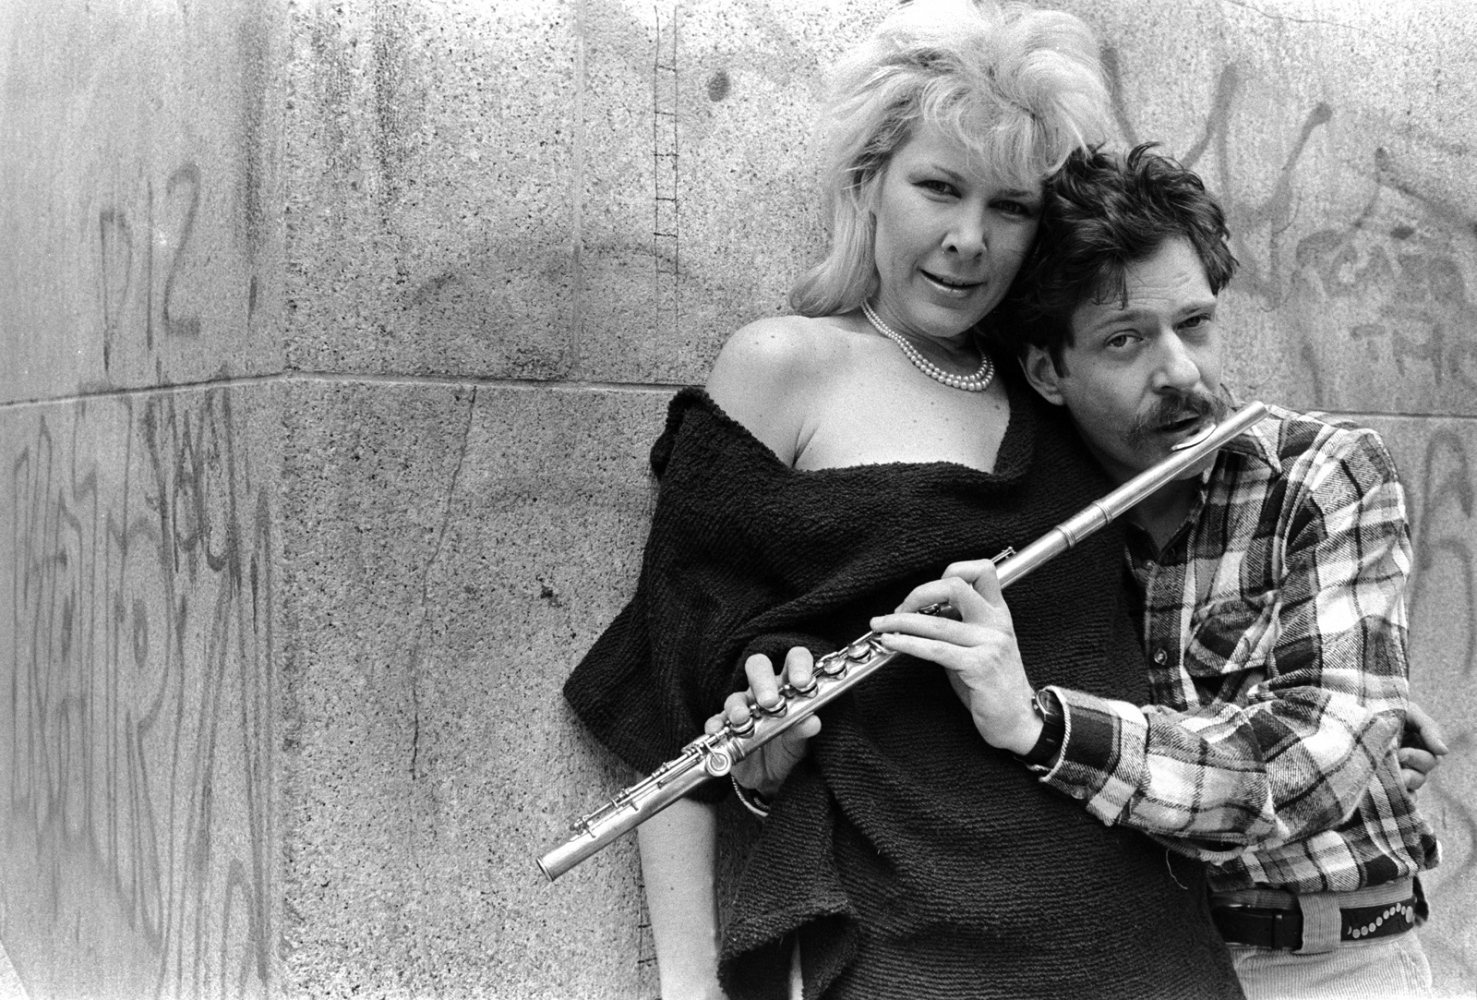 Jeremy Steig and Daina, At the 30th class reunion of the High School of Music & Art- Jeremy was  an acclaimed jazz flutist and the leader of one of the first jazz-rock bands. He died on April 13 in Yokohama, Japan at age 73.